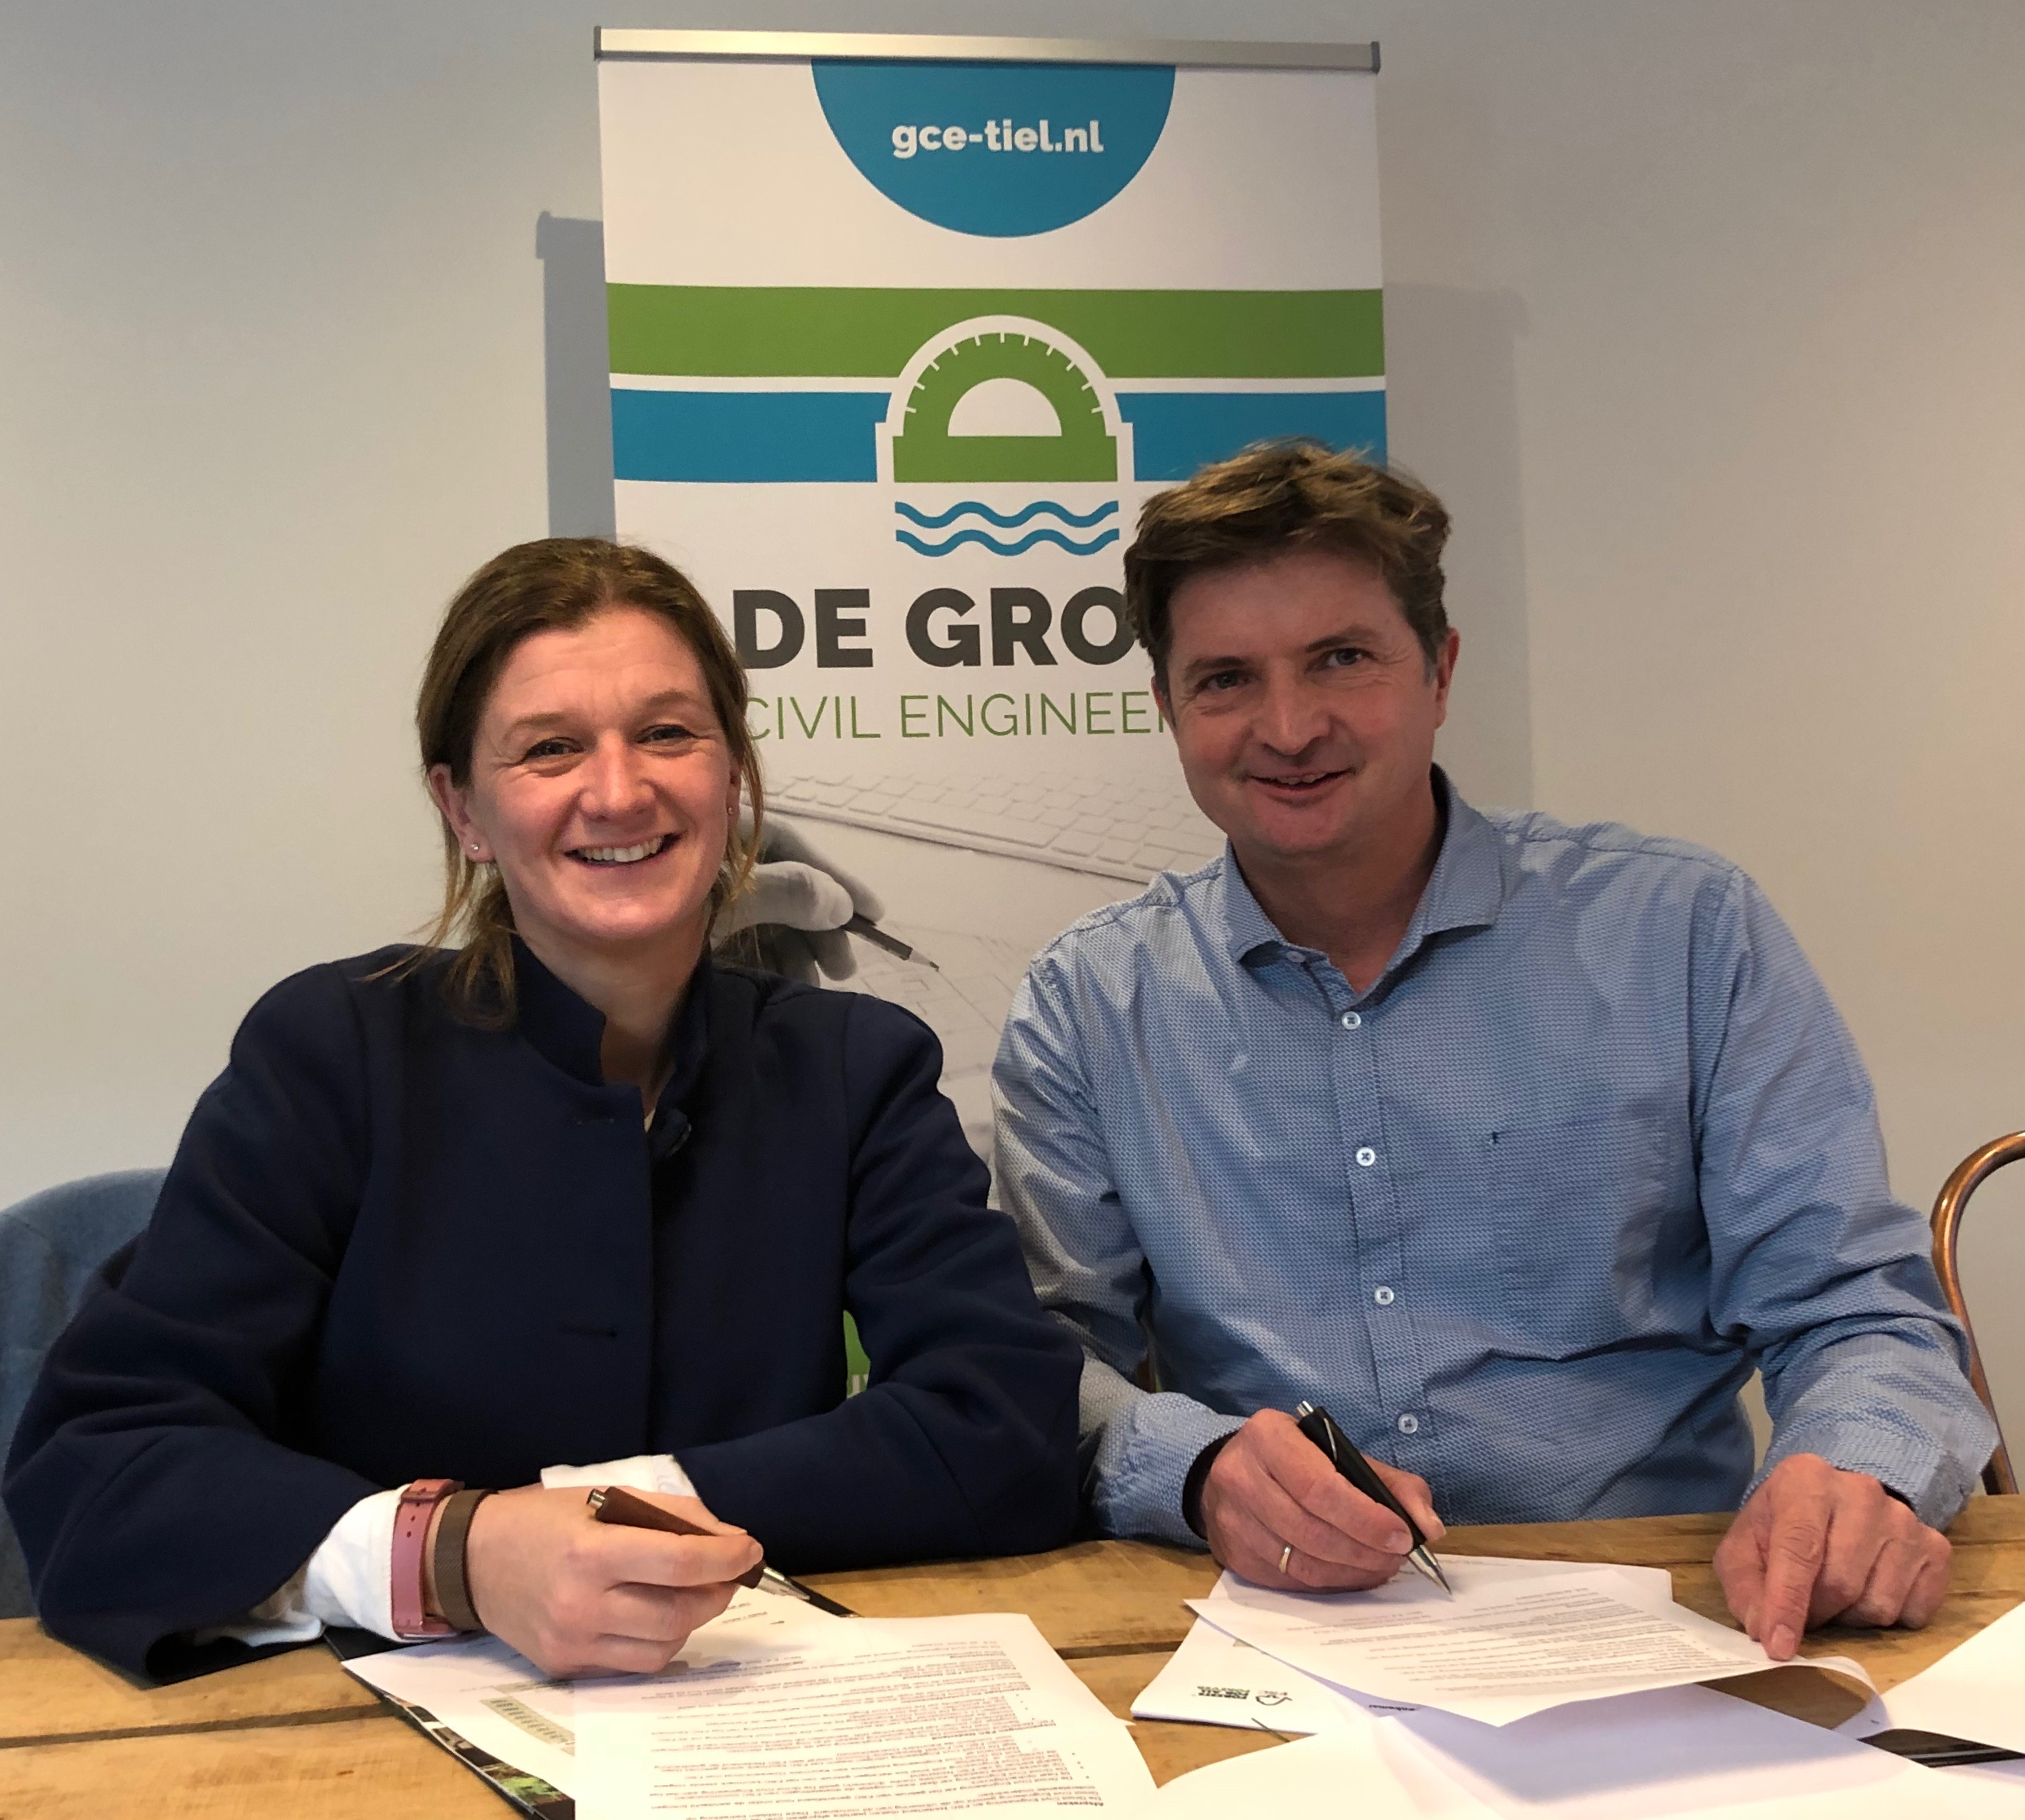 De Groot Civil Engineering uit Tiel is partner geworden van Forest Stewardship Council Nederland